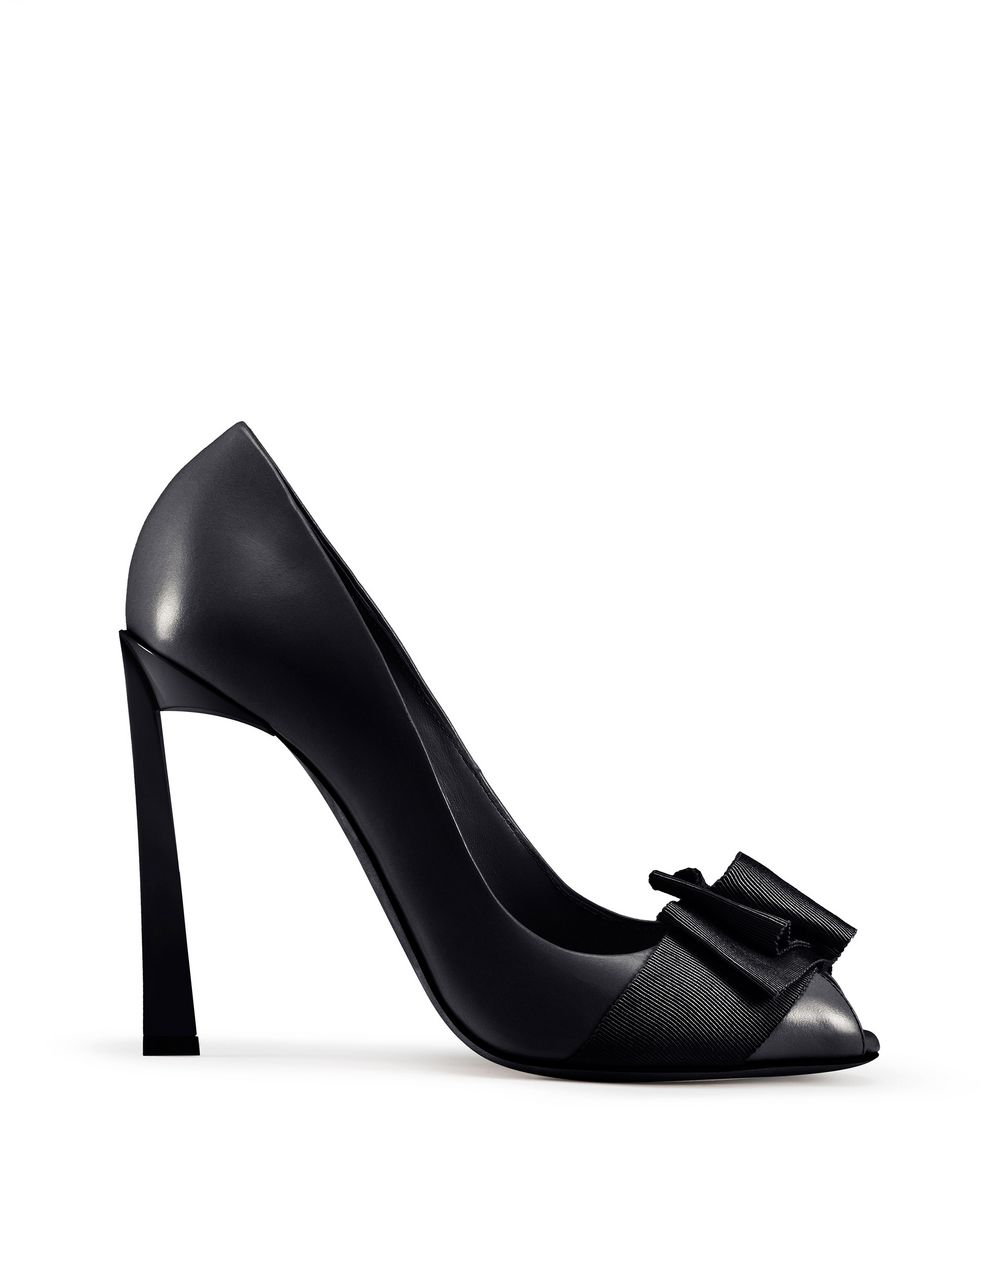 PEEP TOE PUMP WITH BLACK BOW - Lanvin